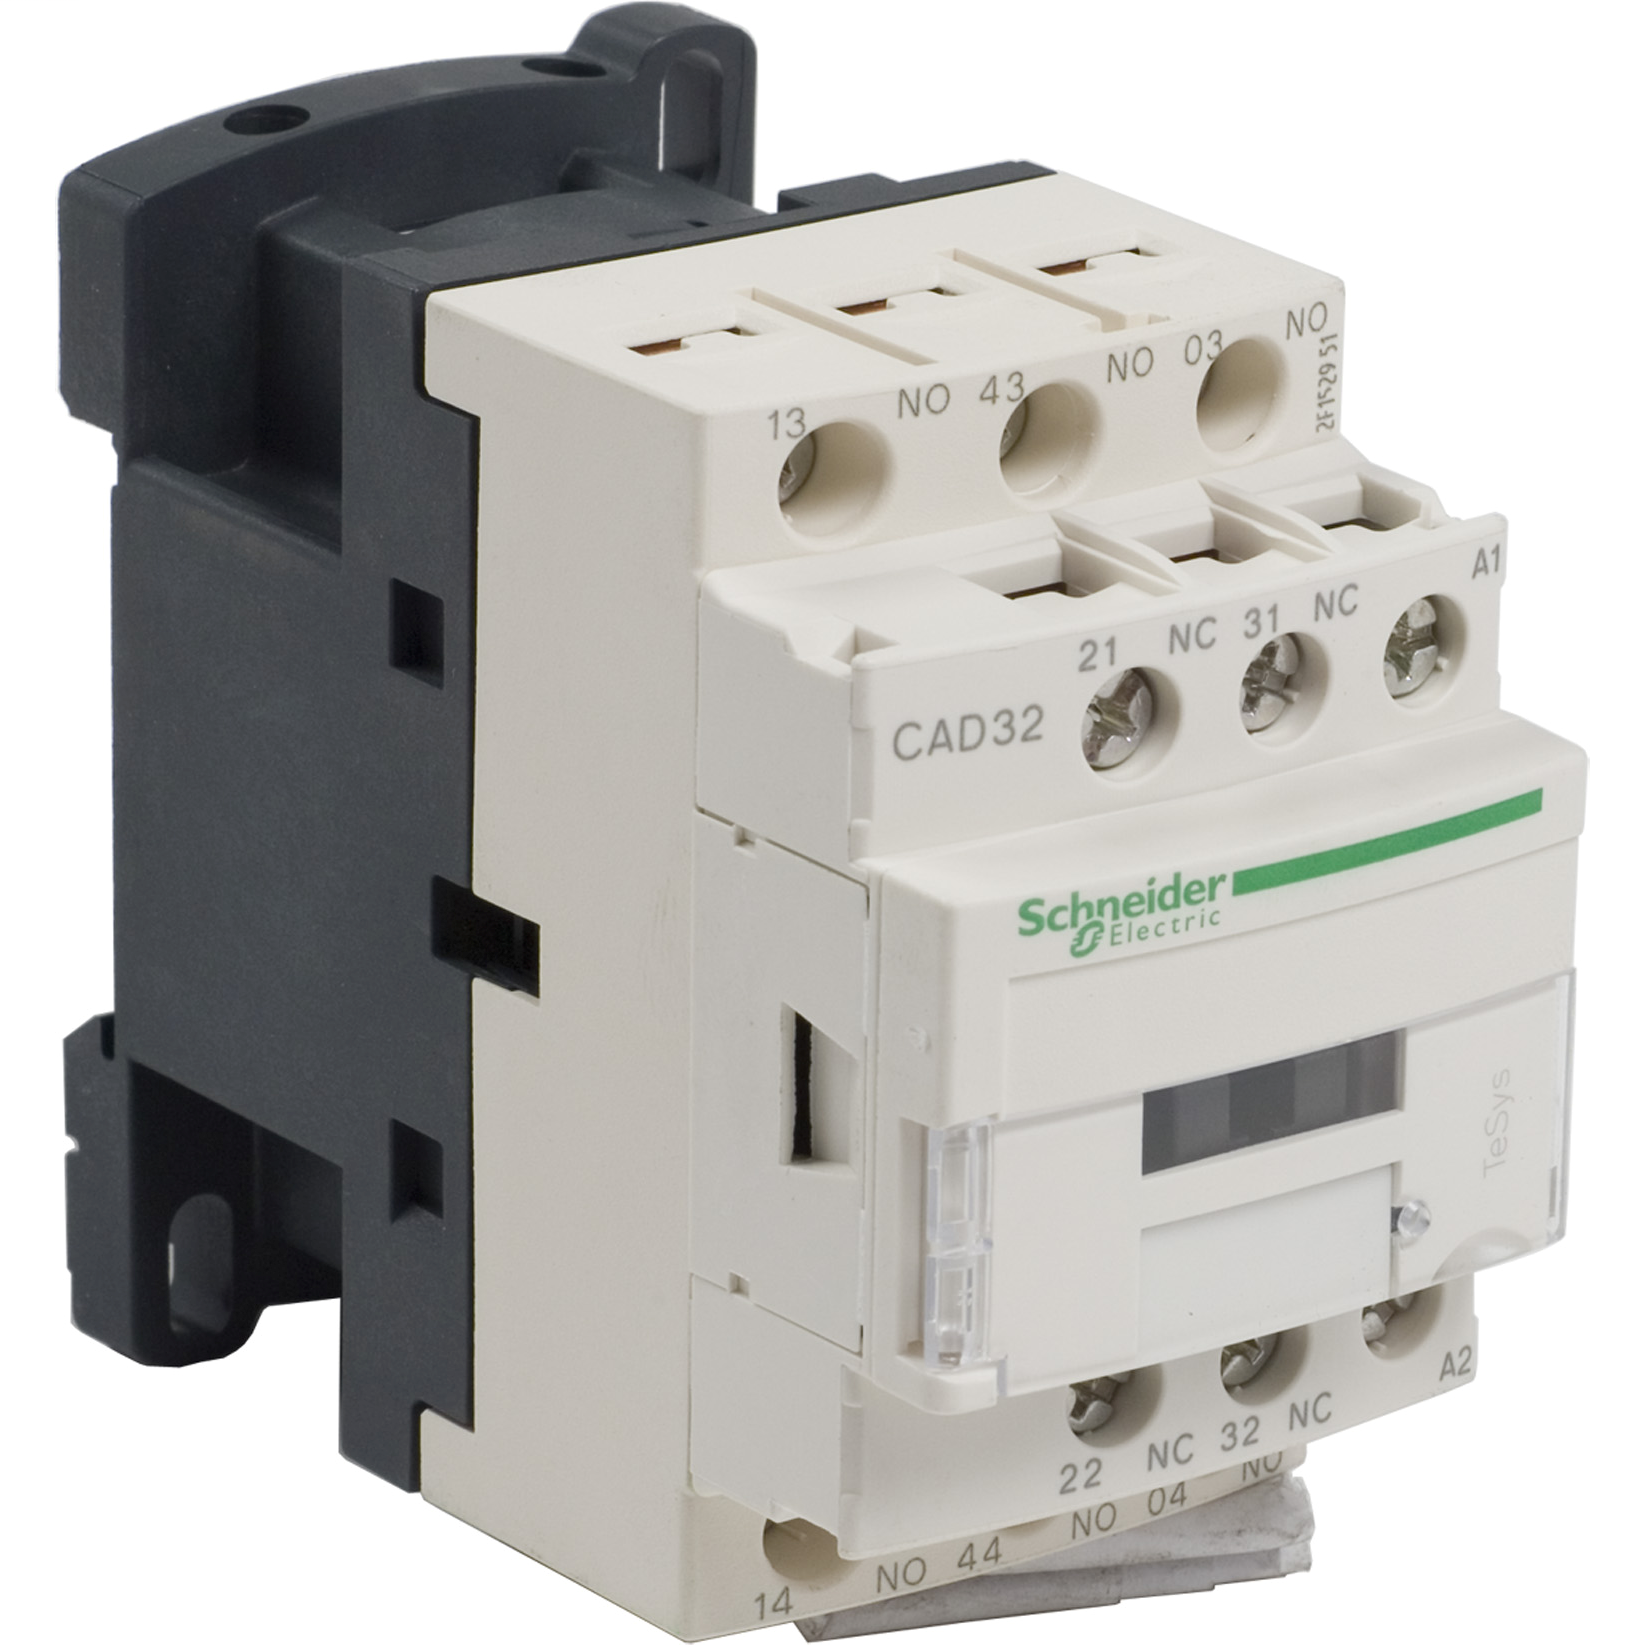 SCHNEIDER ELECTRIC Schneider Electric,Relay 600v 10 Amp Tesys + Options,10 A at <= 60 A°C set of 10 without built-in,120 V AC 50/60 Hz,3 NO + 2 NC,TeSys TeSys D control relay,auxiliary contactor CAD,control circuit CAD